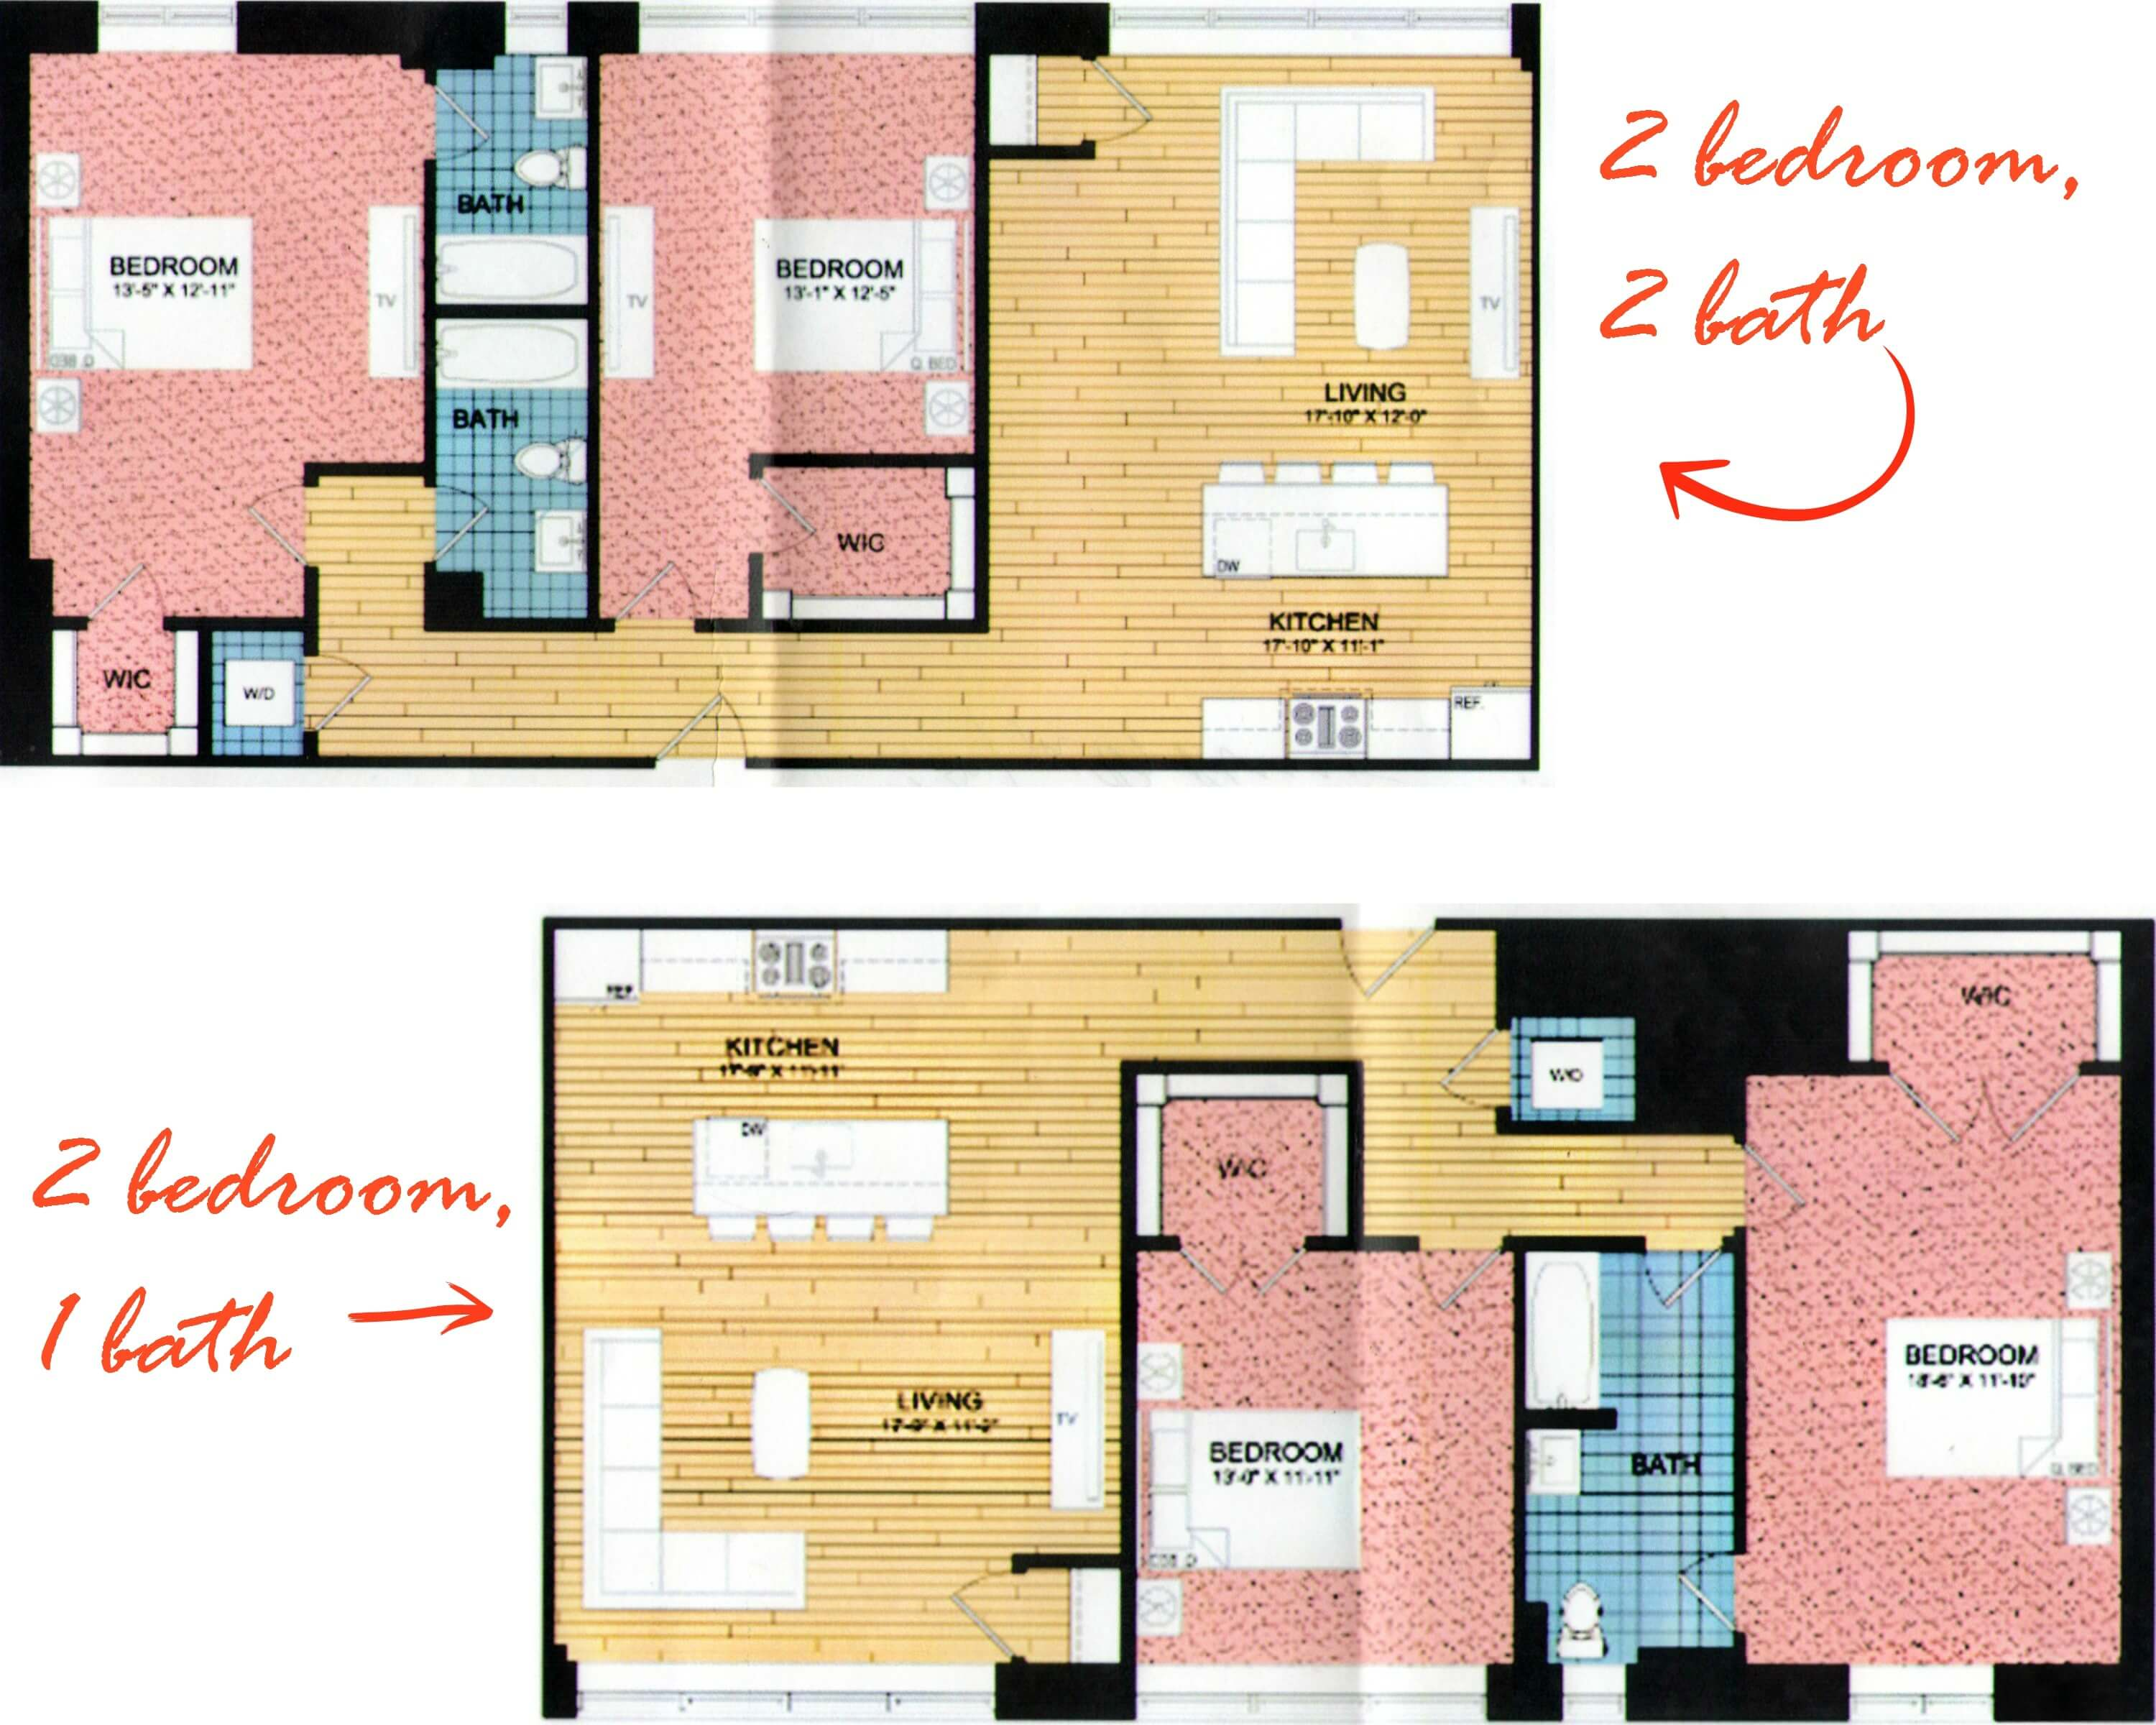 Eastfallslocal 2 bedroom collage text